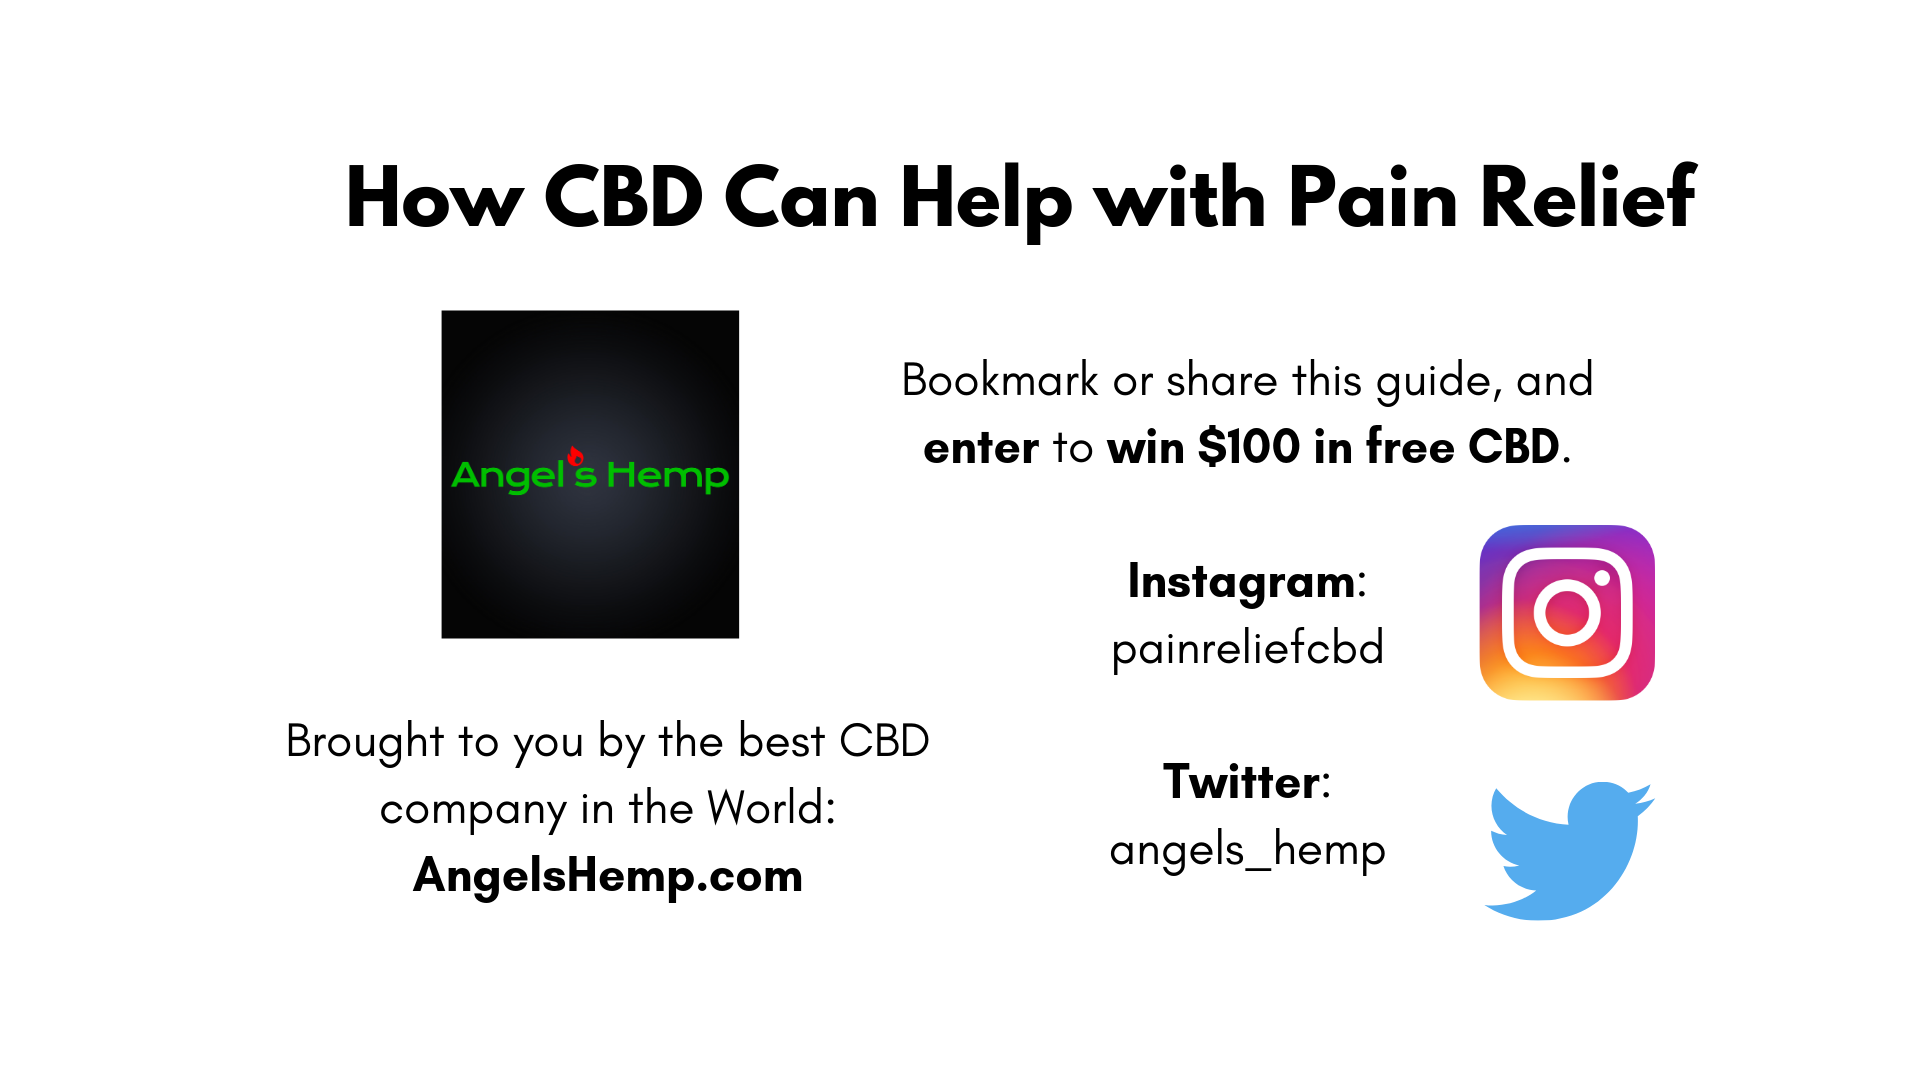 CBD for Pain Relief: How CBD Works to Reduce Chronic and Acute Pain, Inflammation, Fatigue, and Soreness, by AngelsHemp.com